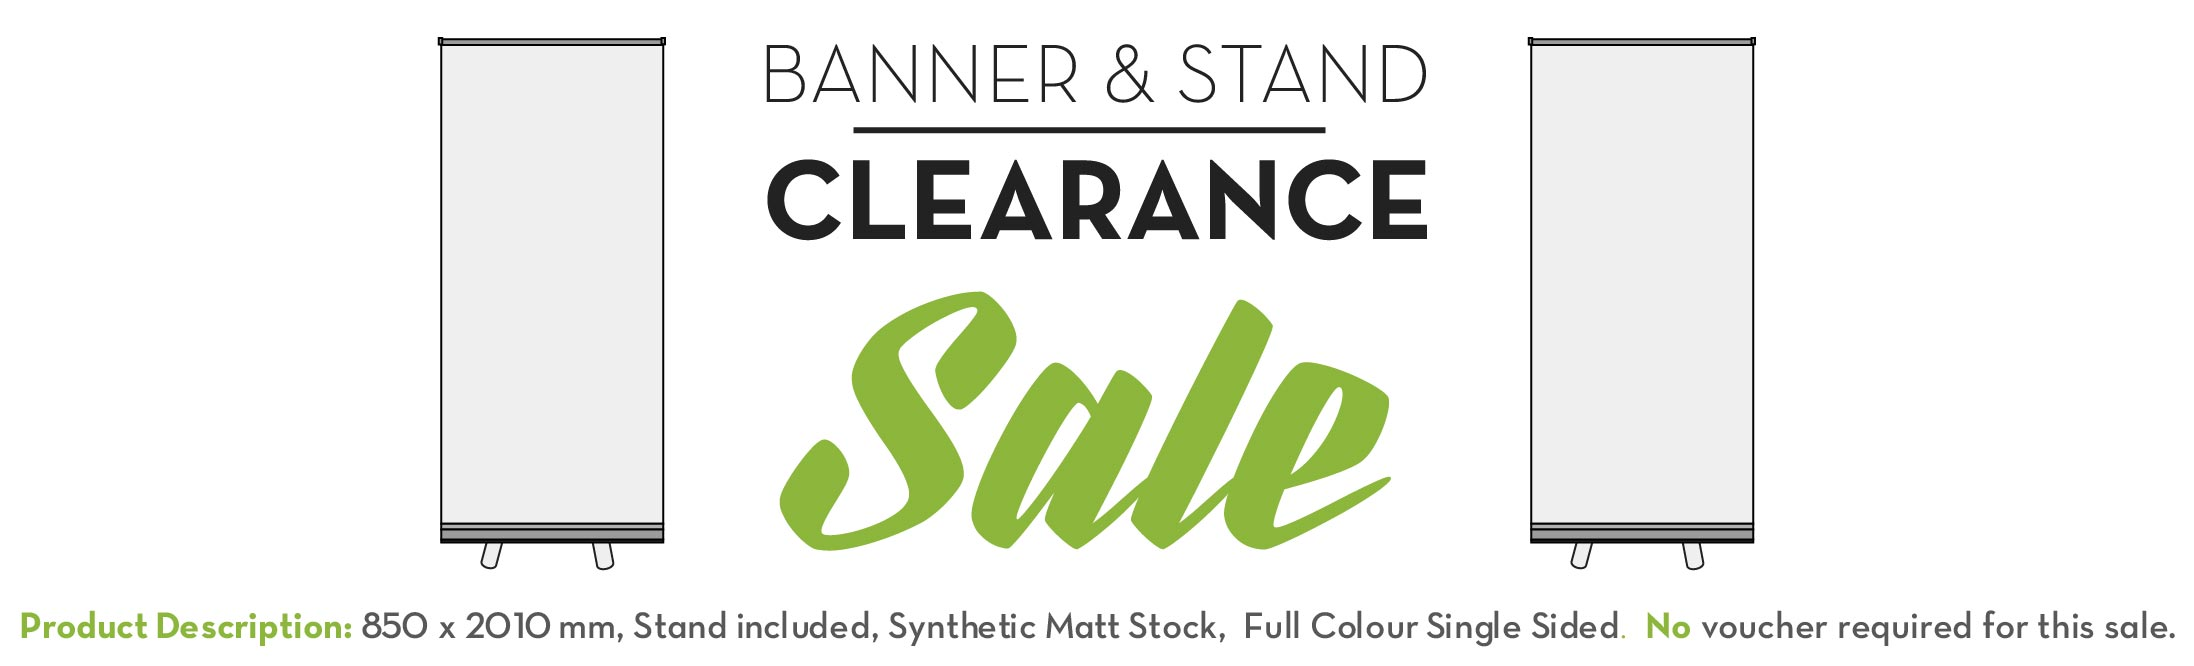 Banner & Stand Clearance SALE